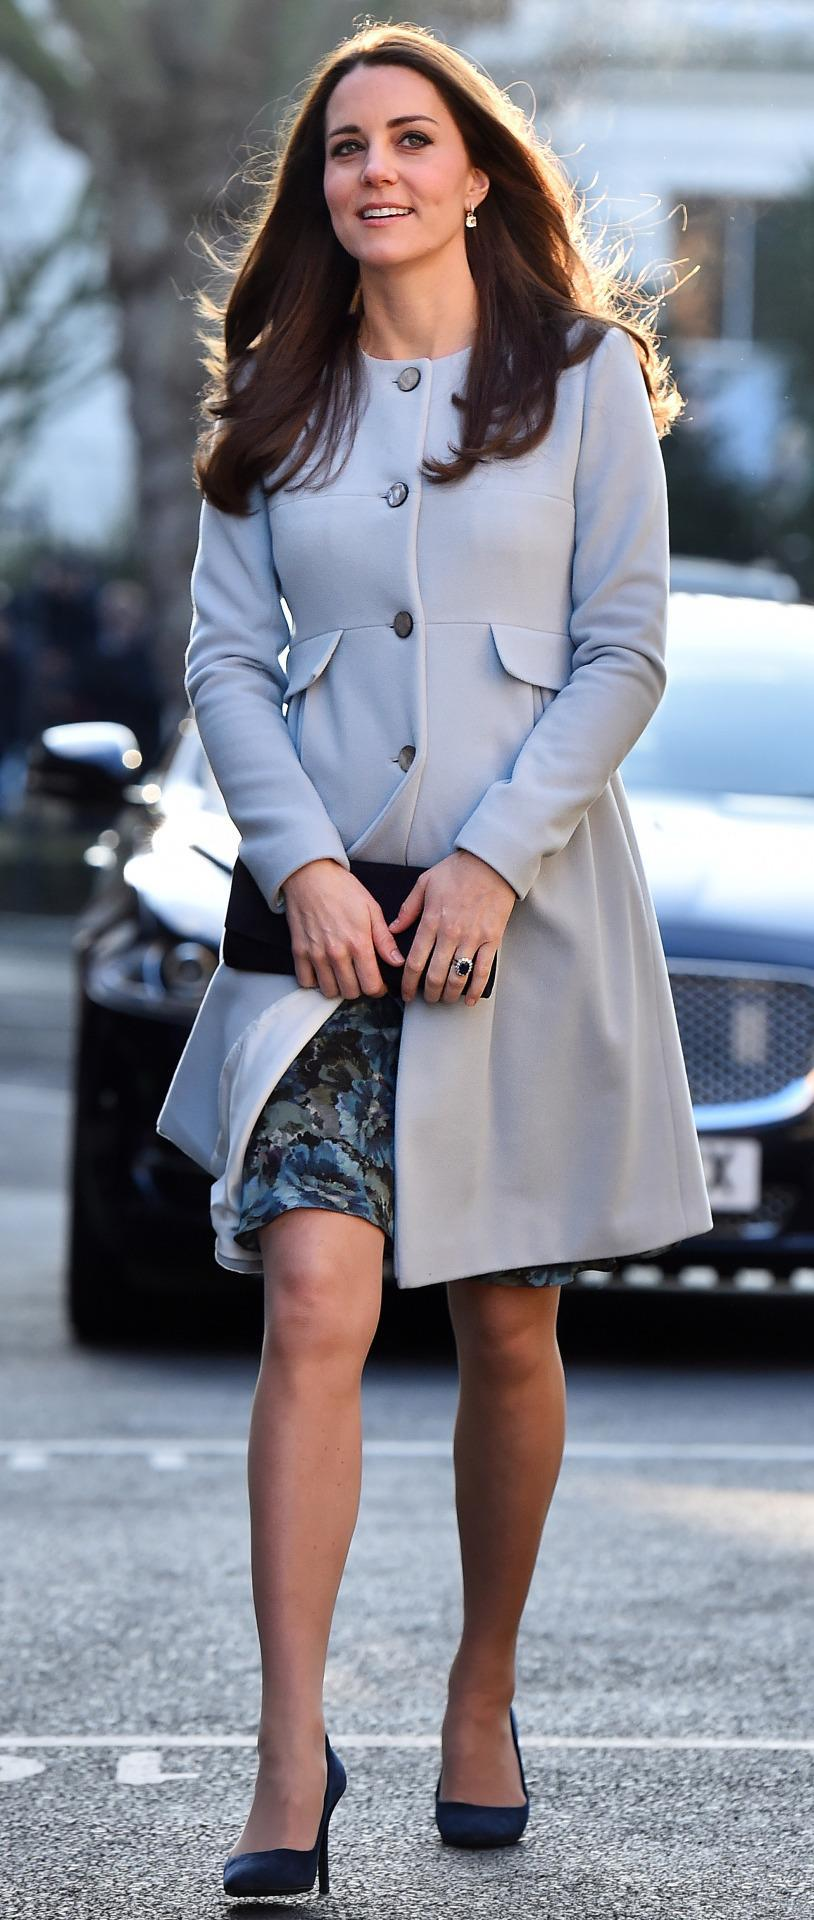 <p>For an engagement in Kensington, the Duchess wore a pale blue coat by her go-to maternity label, Seraphine, with a floral dress underneath. Suede Alexander McQueen shoes and a Stuart Weitzman bag completed the look. </p><p><i>[Photo: PA]</i></p>